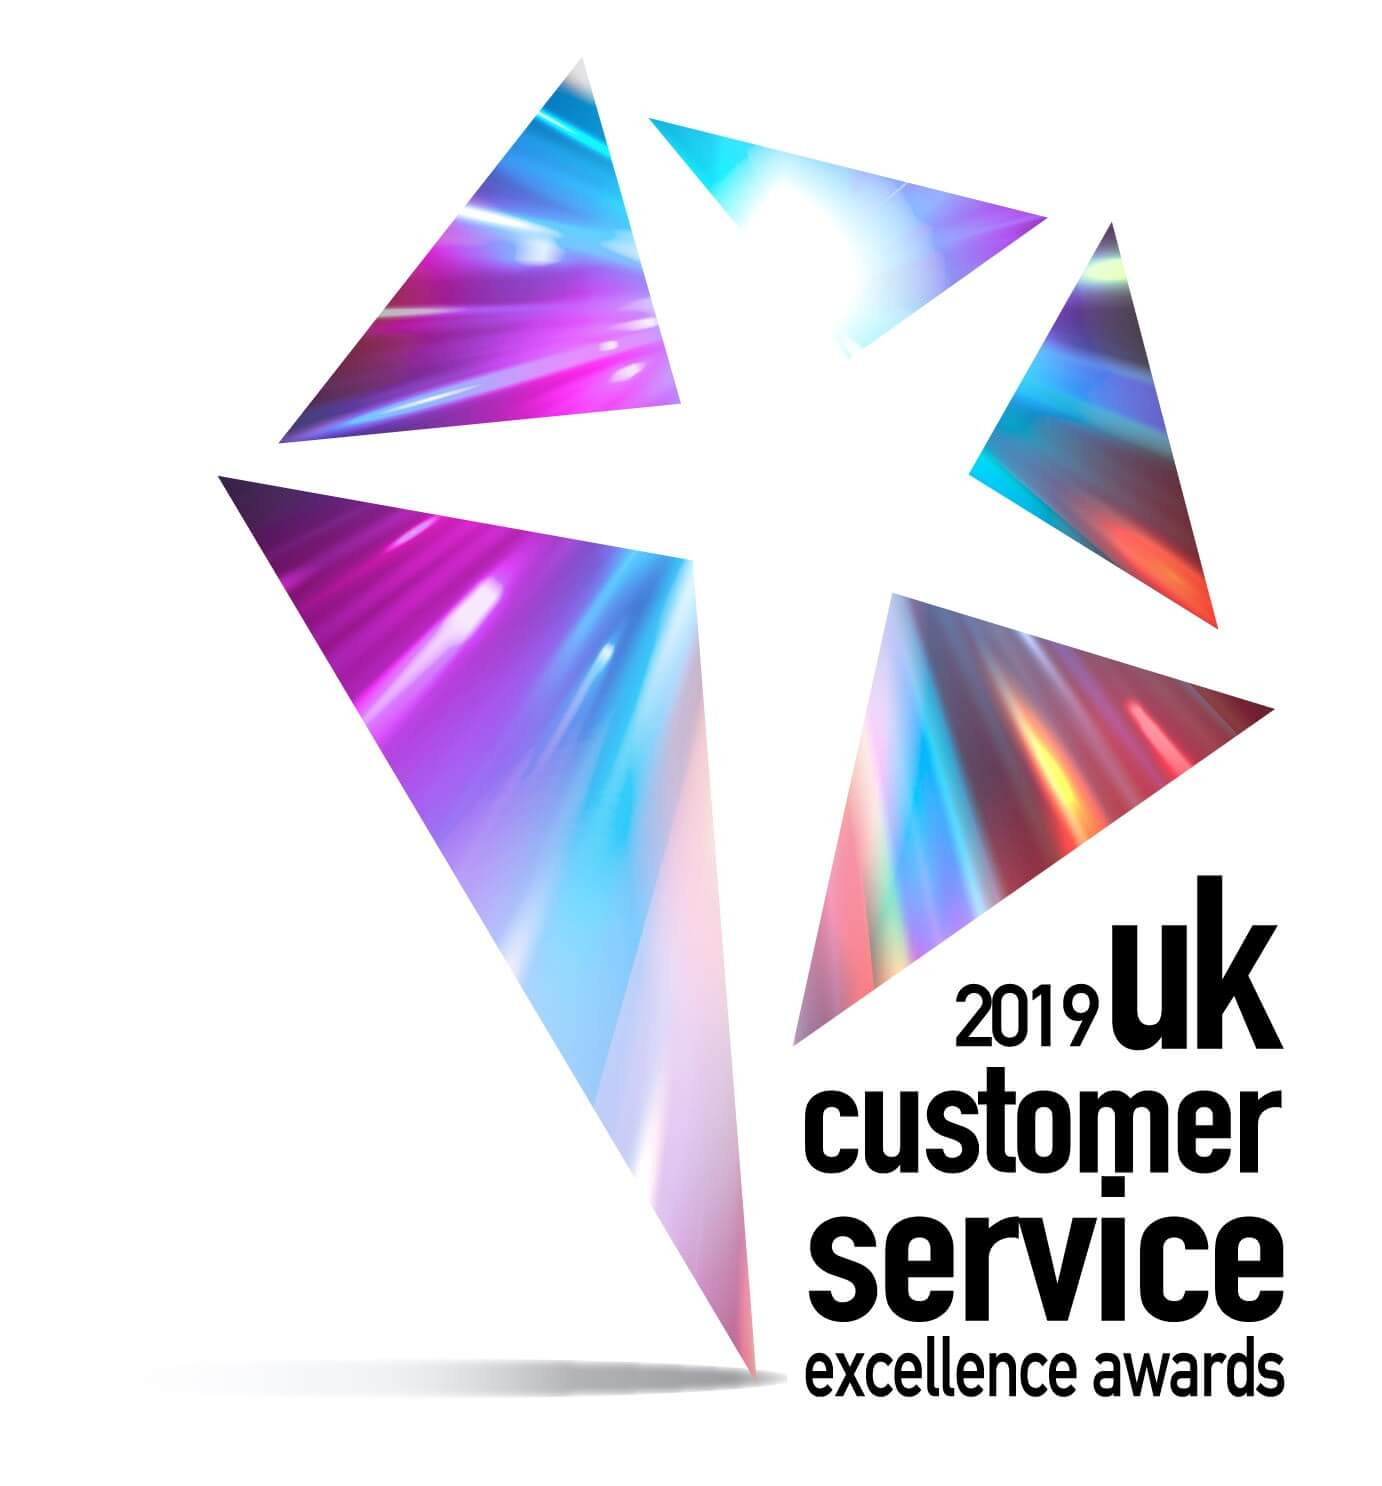 UK Customer Service Excellence Award 2019